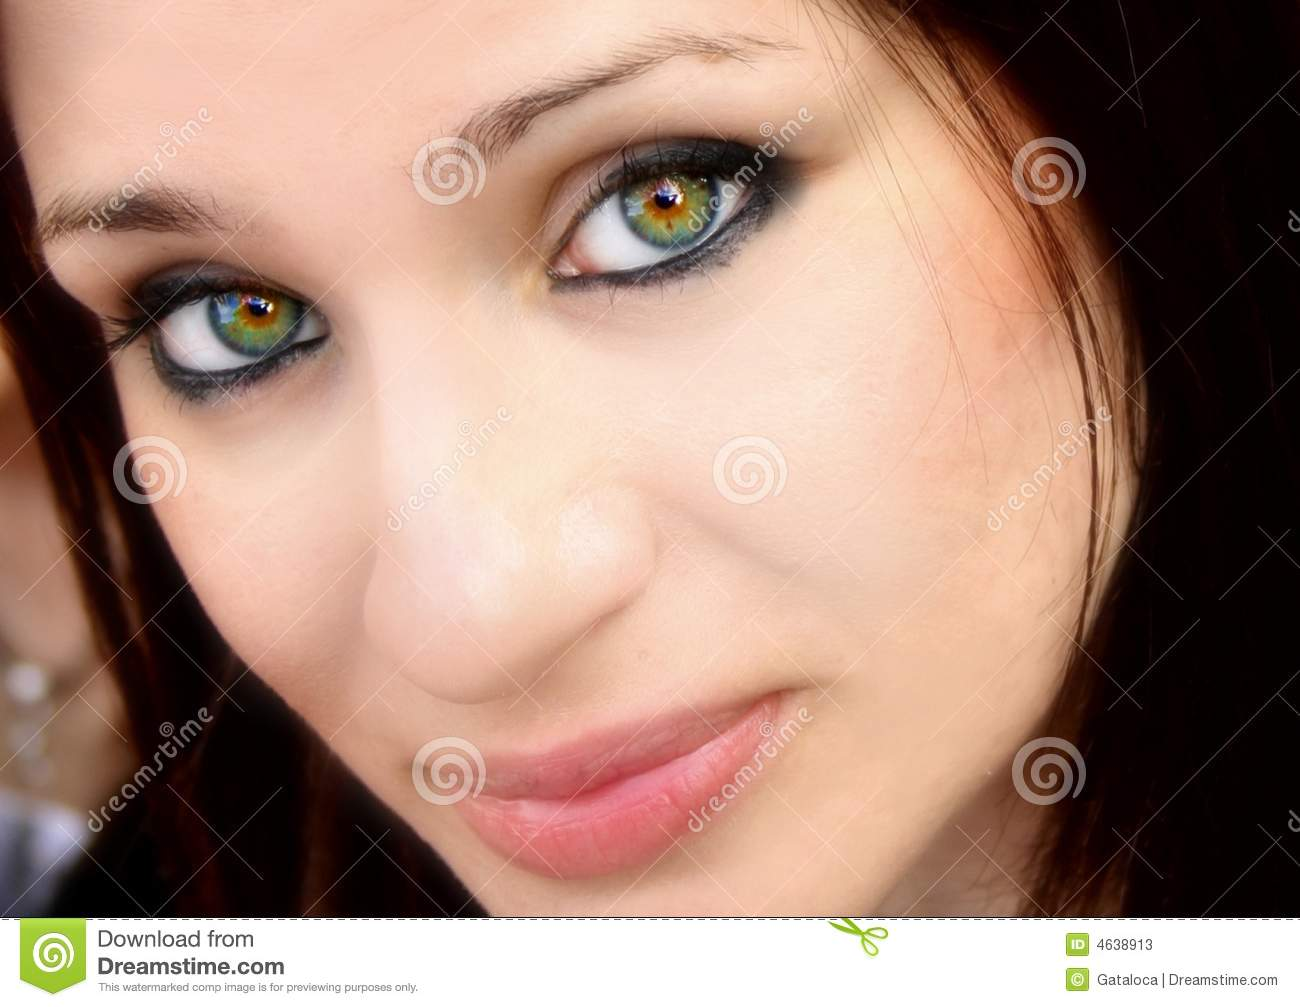 Stock Photos Pretty Woman With Green Eyes Image 4638913